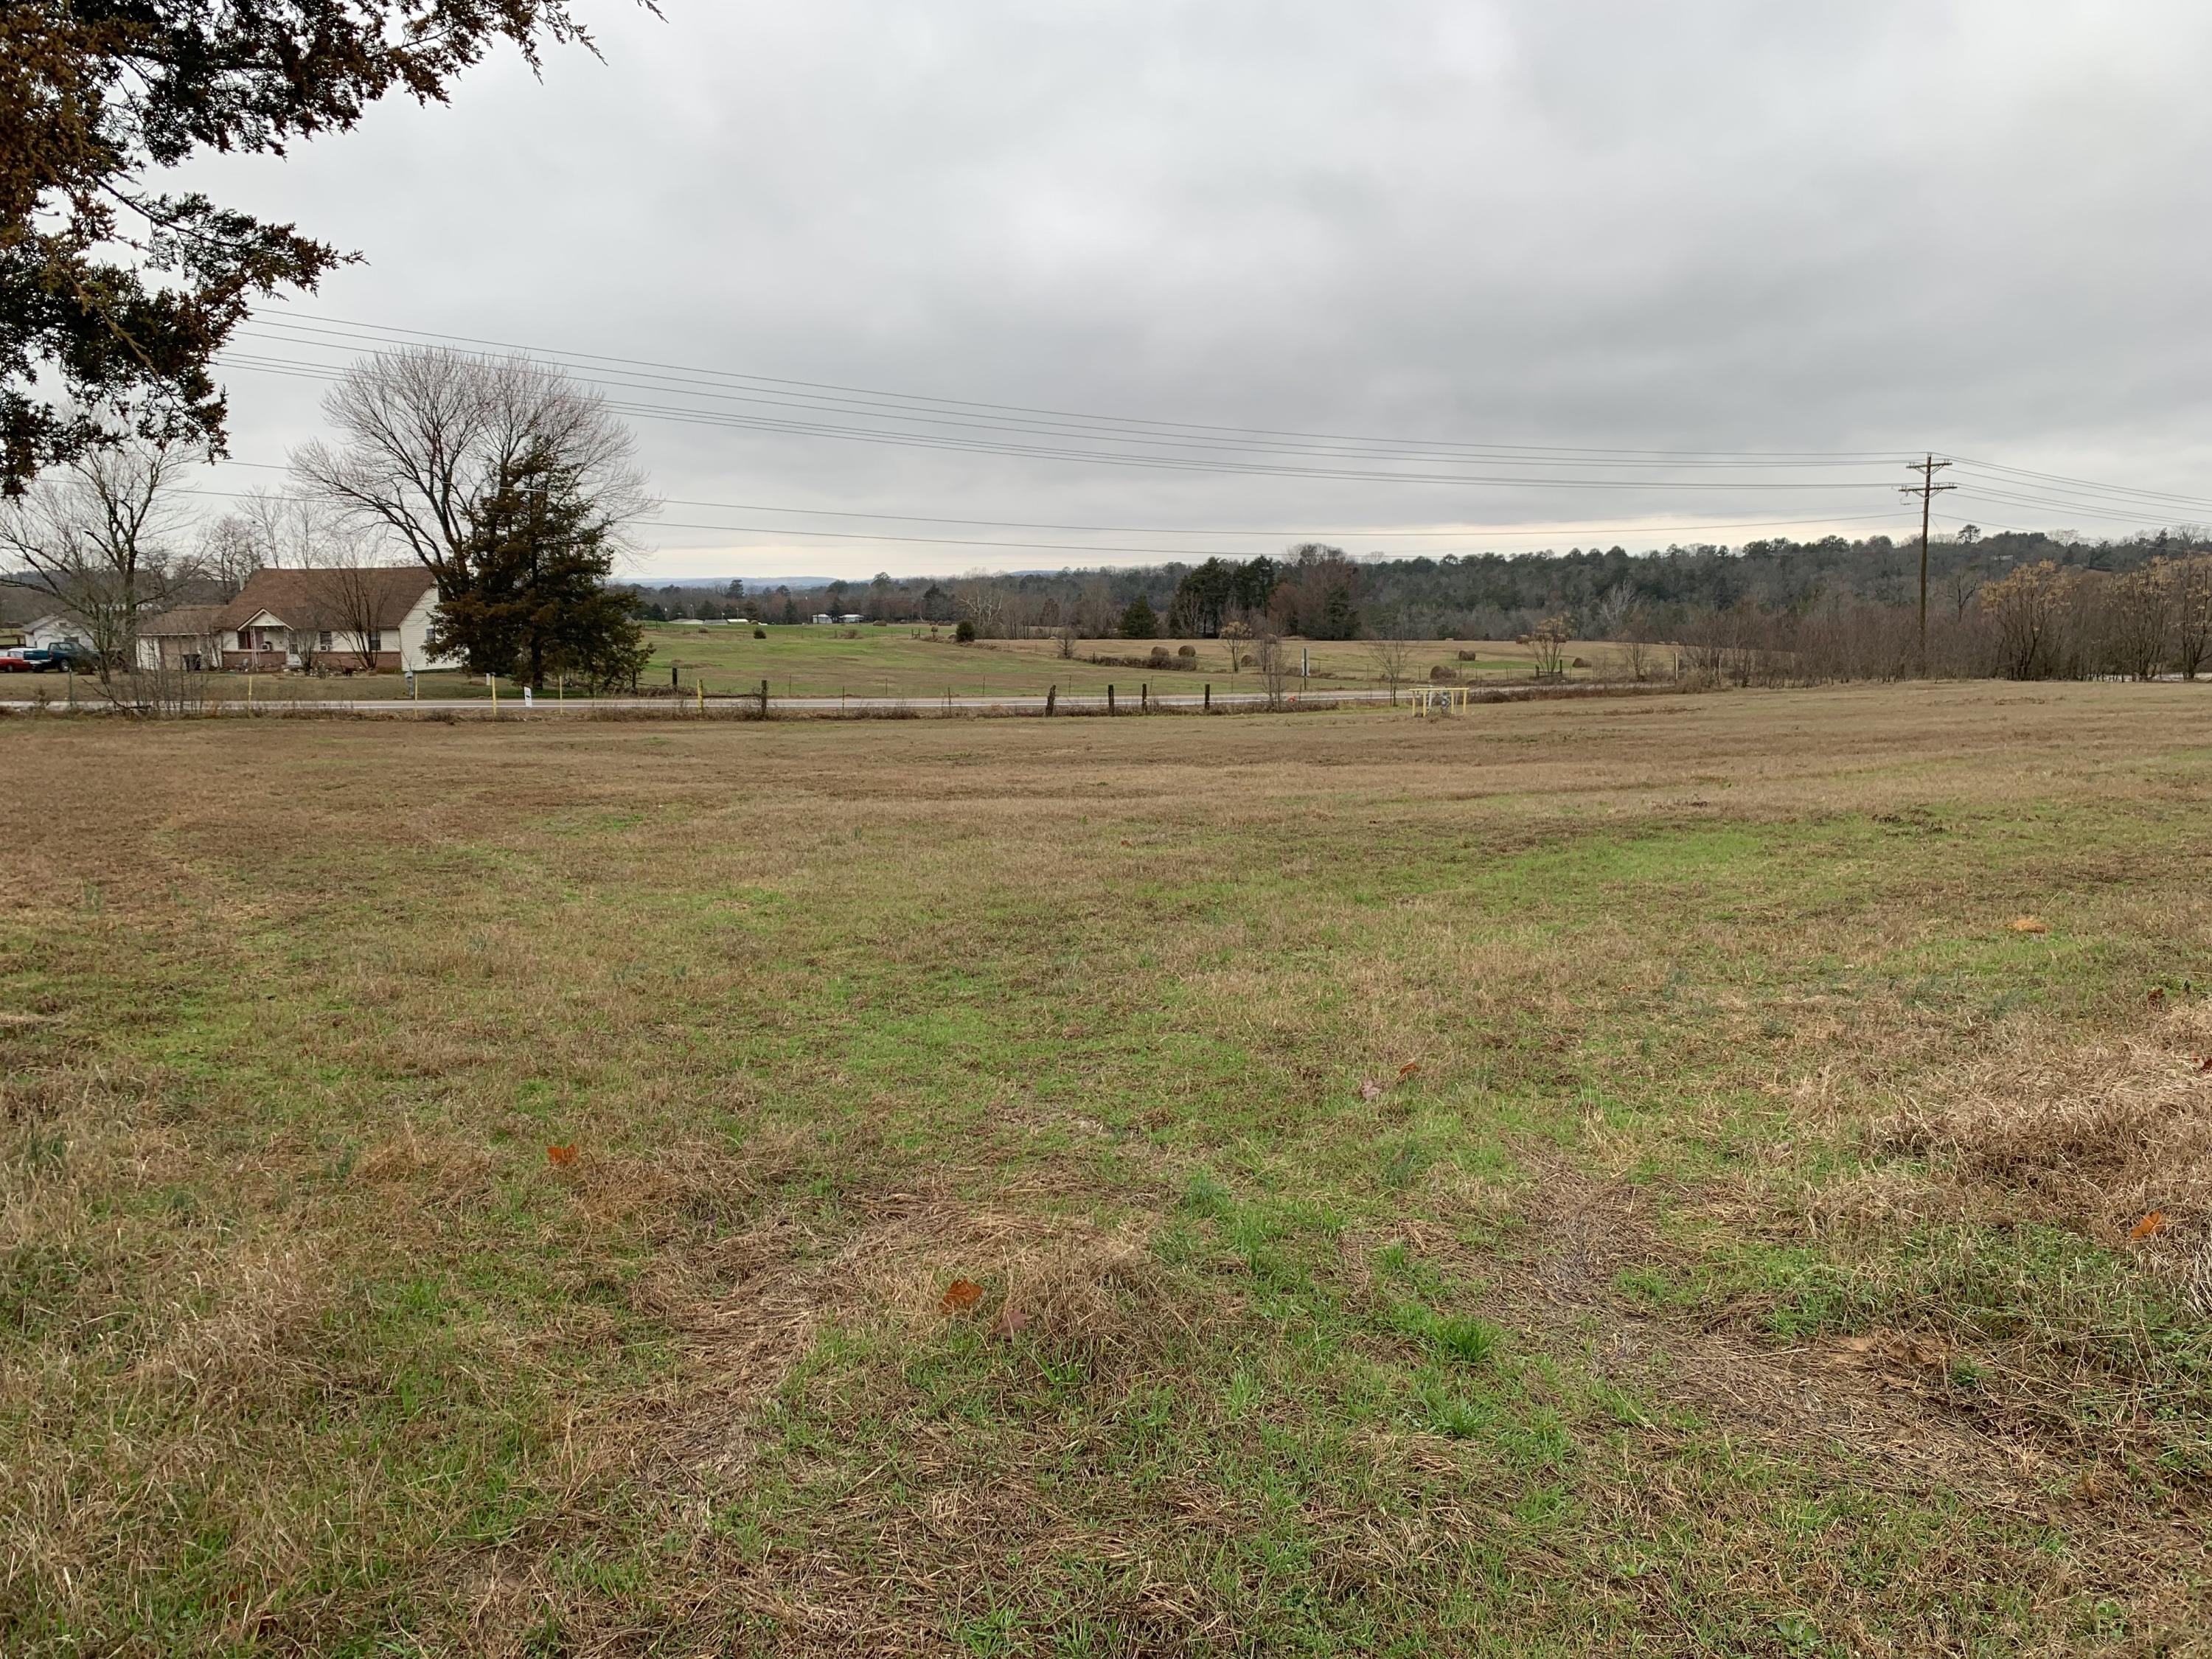 Large photo 5 of land for sale at 2 Co Rd 1760 , London, AR, listed by Coldwell Banker Premier Realty